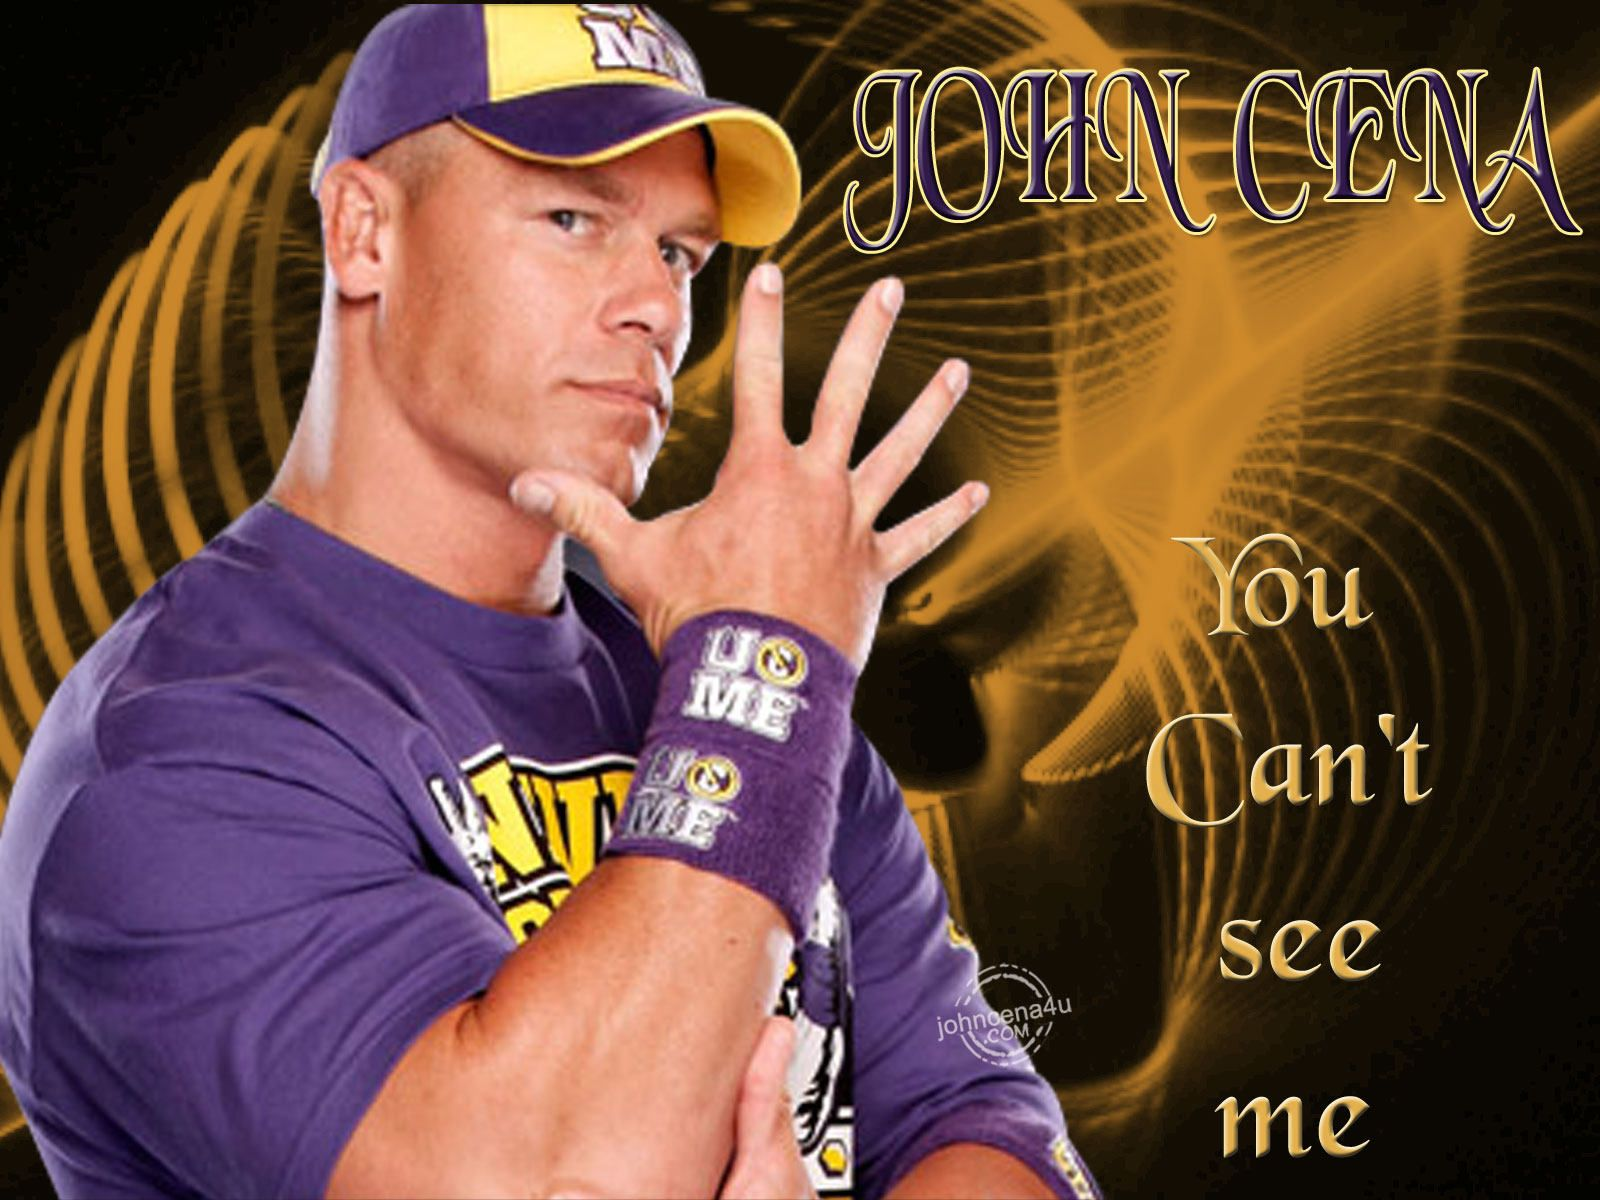 wwe john cena wallpapers hd free download 1278×720 john cena hd